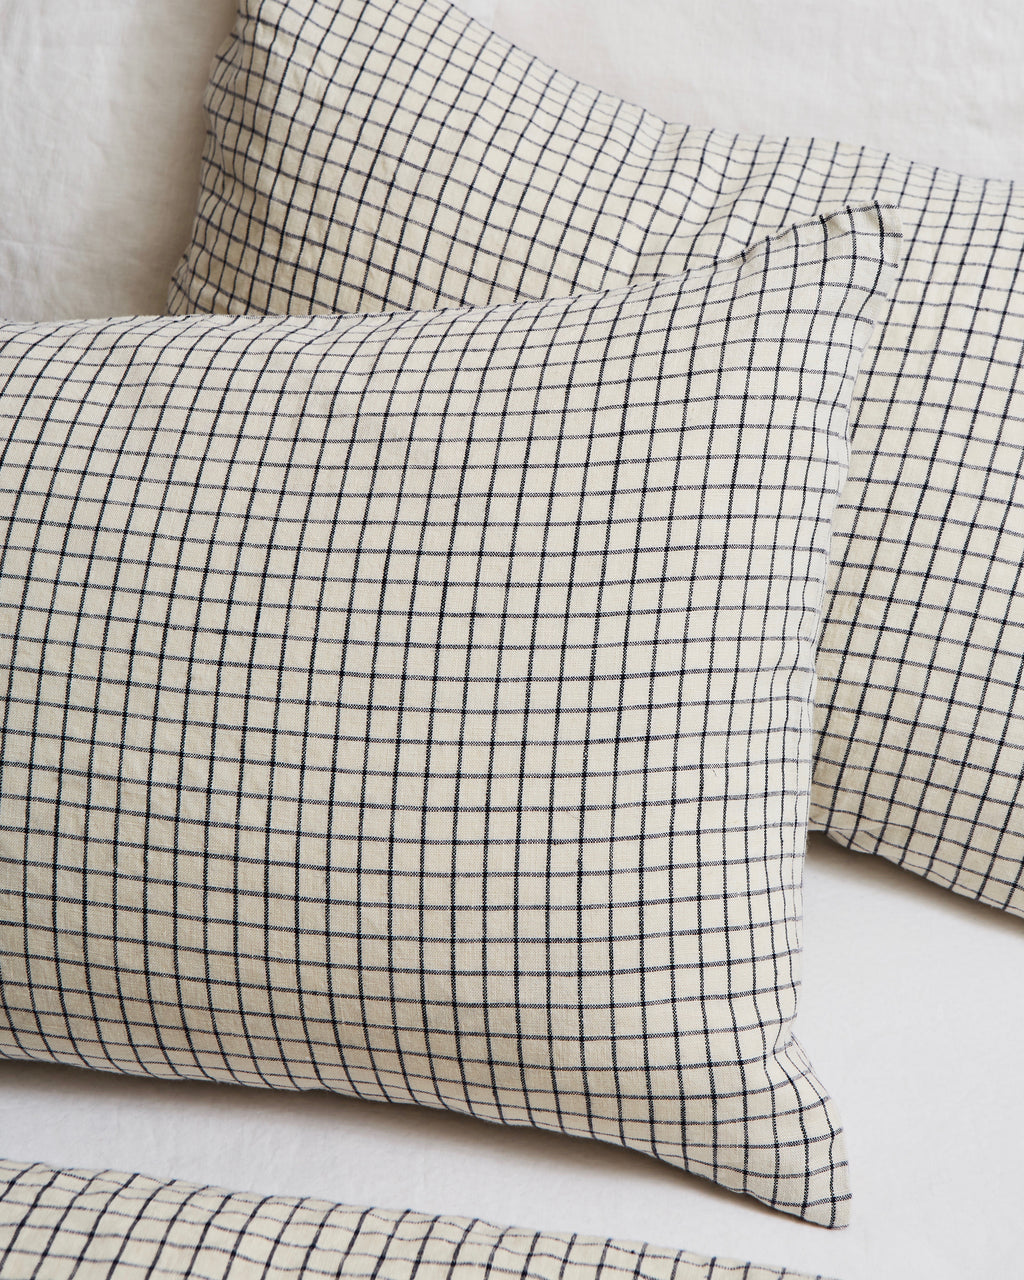 Linen Pillowcases: Jenn